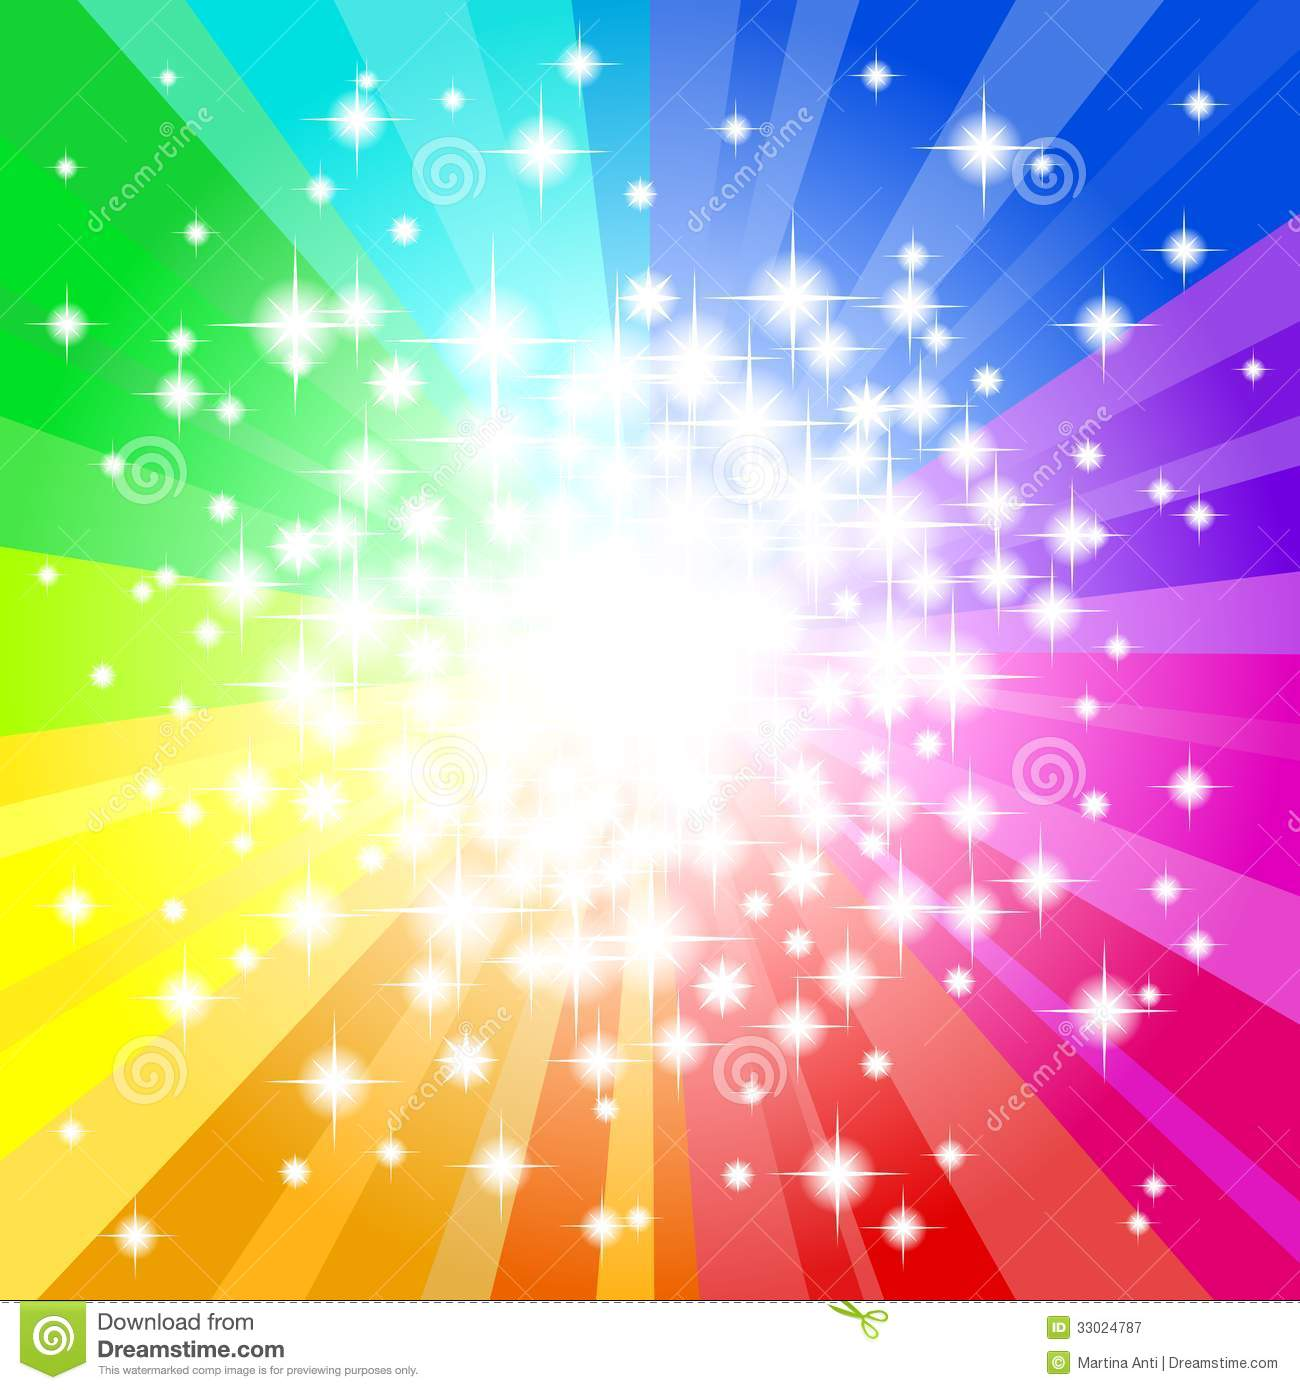 Best Floor Plan App Abstract Rainbow Colored Star Background Royalty Free